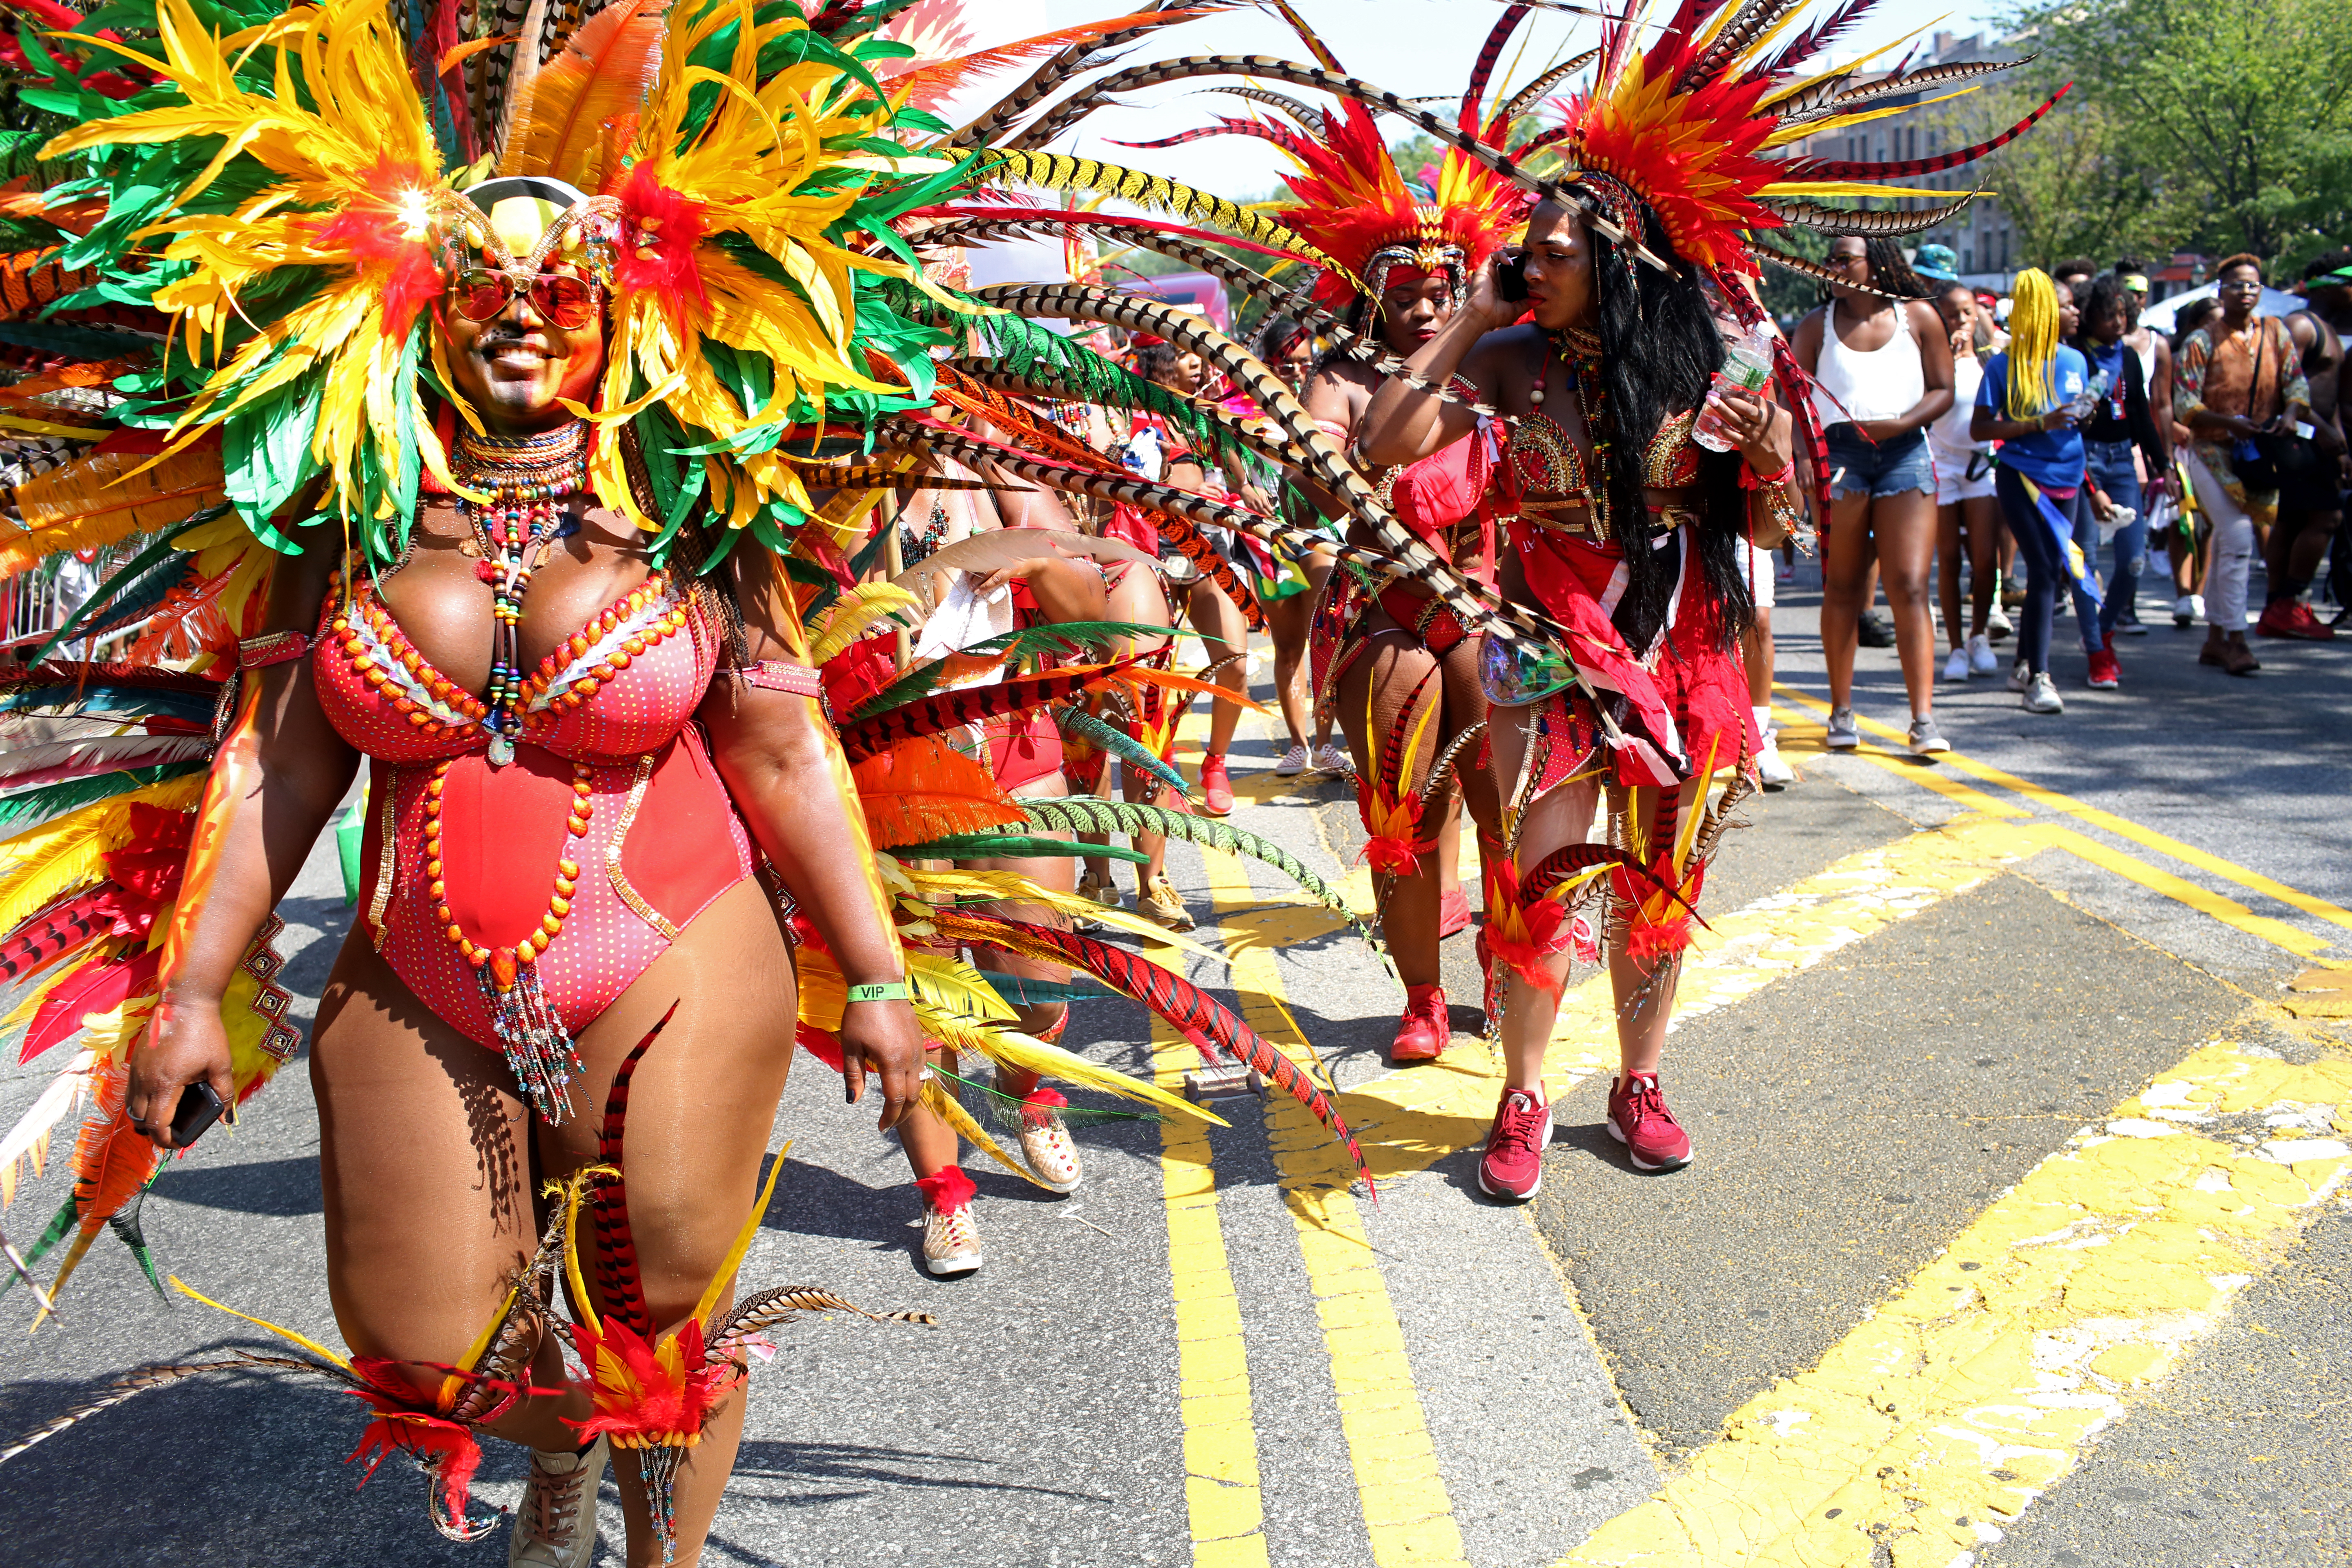 Women in colorful costumes with feathered headdresses walk down a street during a large neighborhood parade.